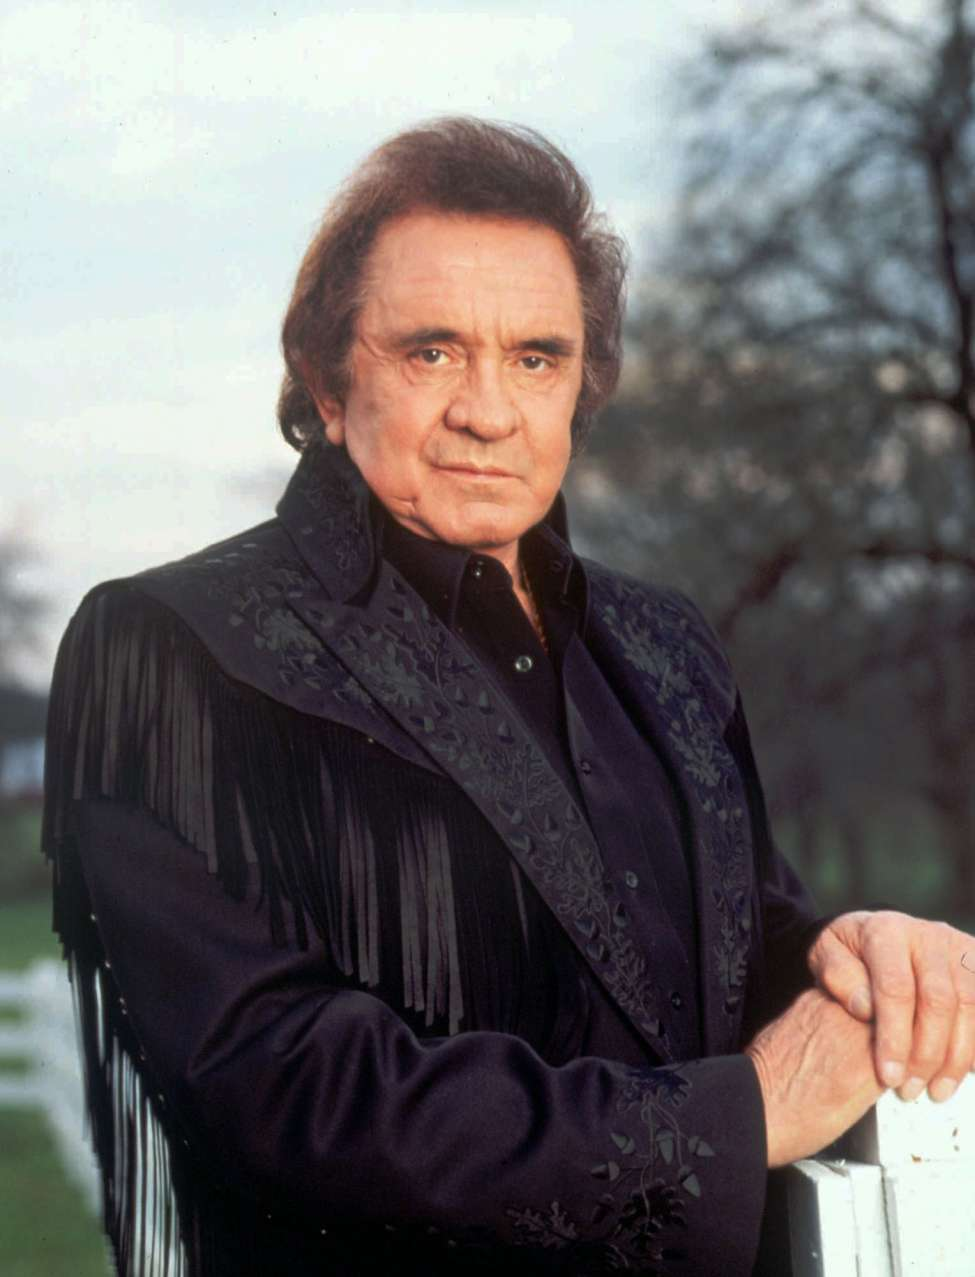 FILE--Country singer Johnny Cash poses for a portrait in this 1995 file photo. Cash, 69, was hospitalized Sunday, Oct. 7, 2001 with bronchitis and was listed in stable condition on Tuesday. (AP Photo/TBS, File)